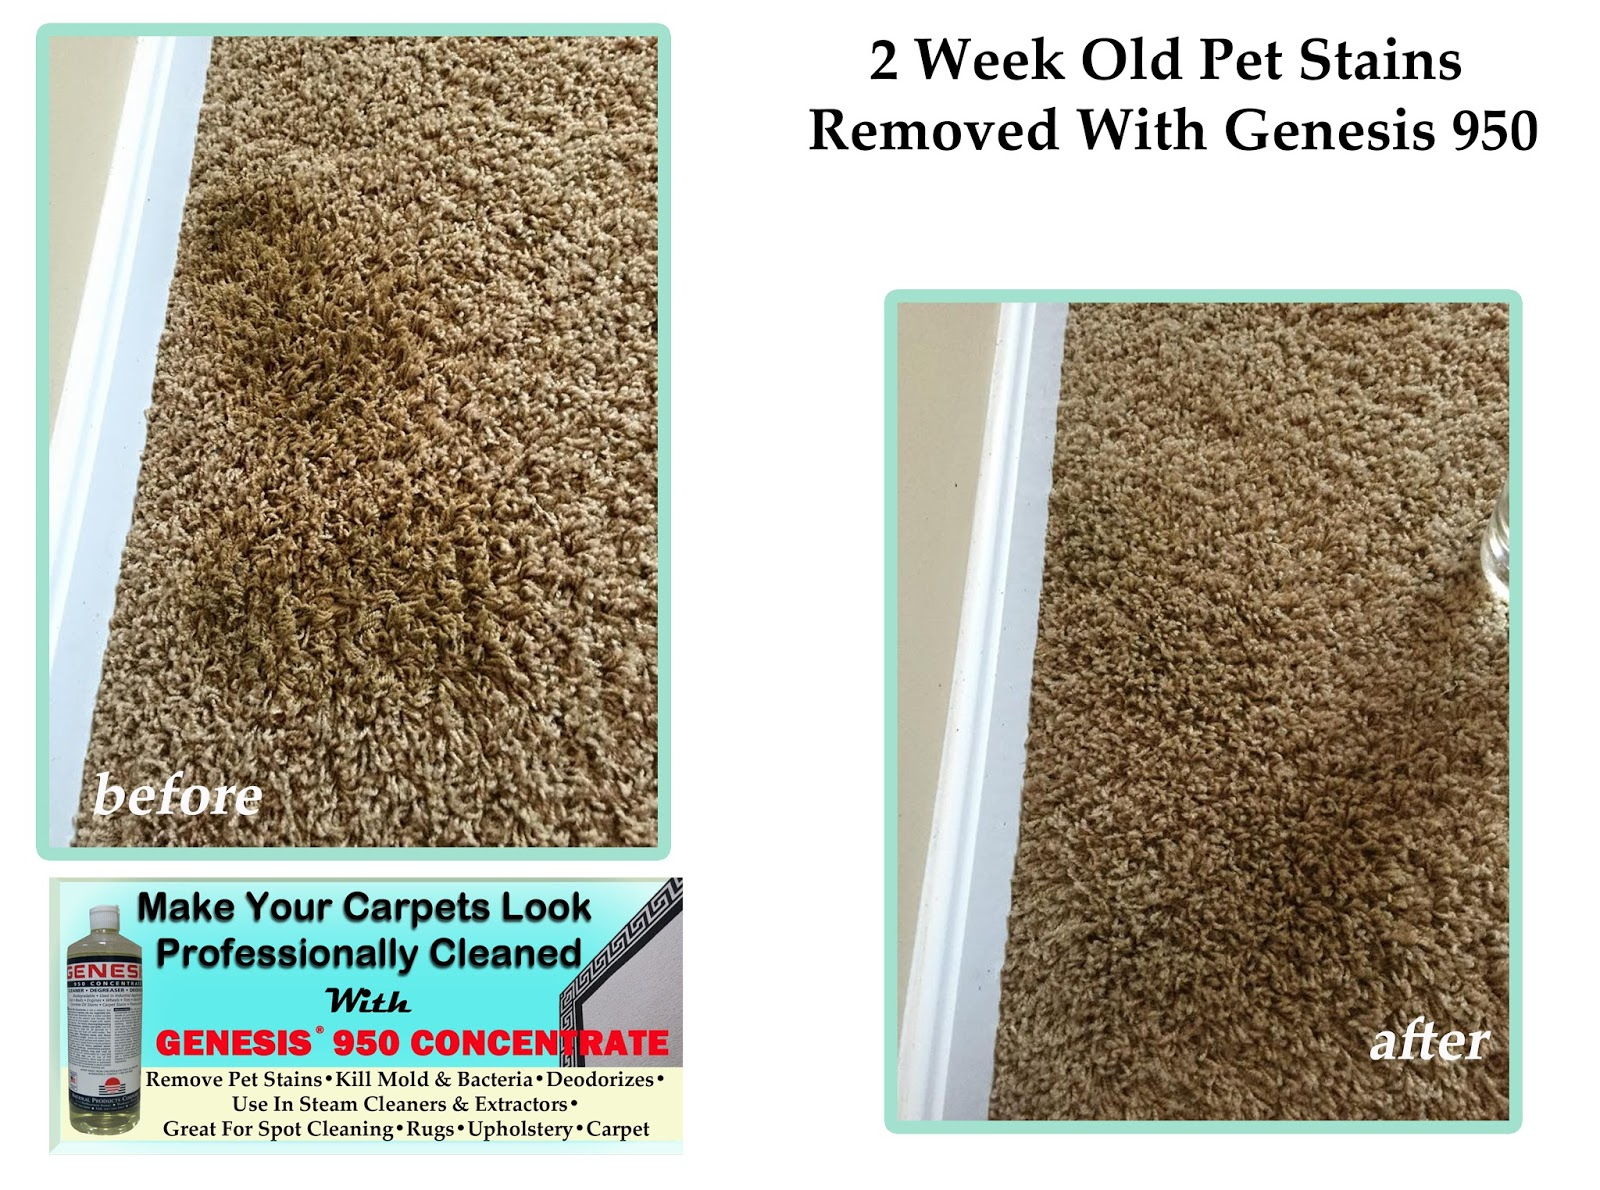 Best Carpet Cleaner And Stain Remover Genesis 950 Before